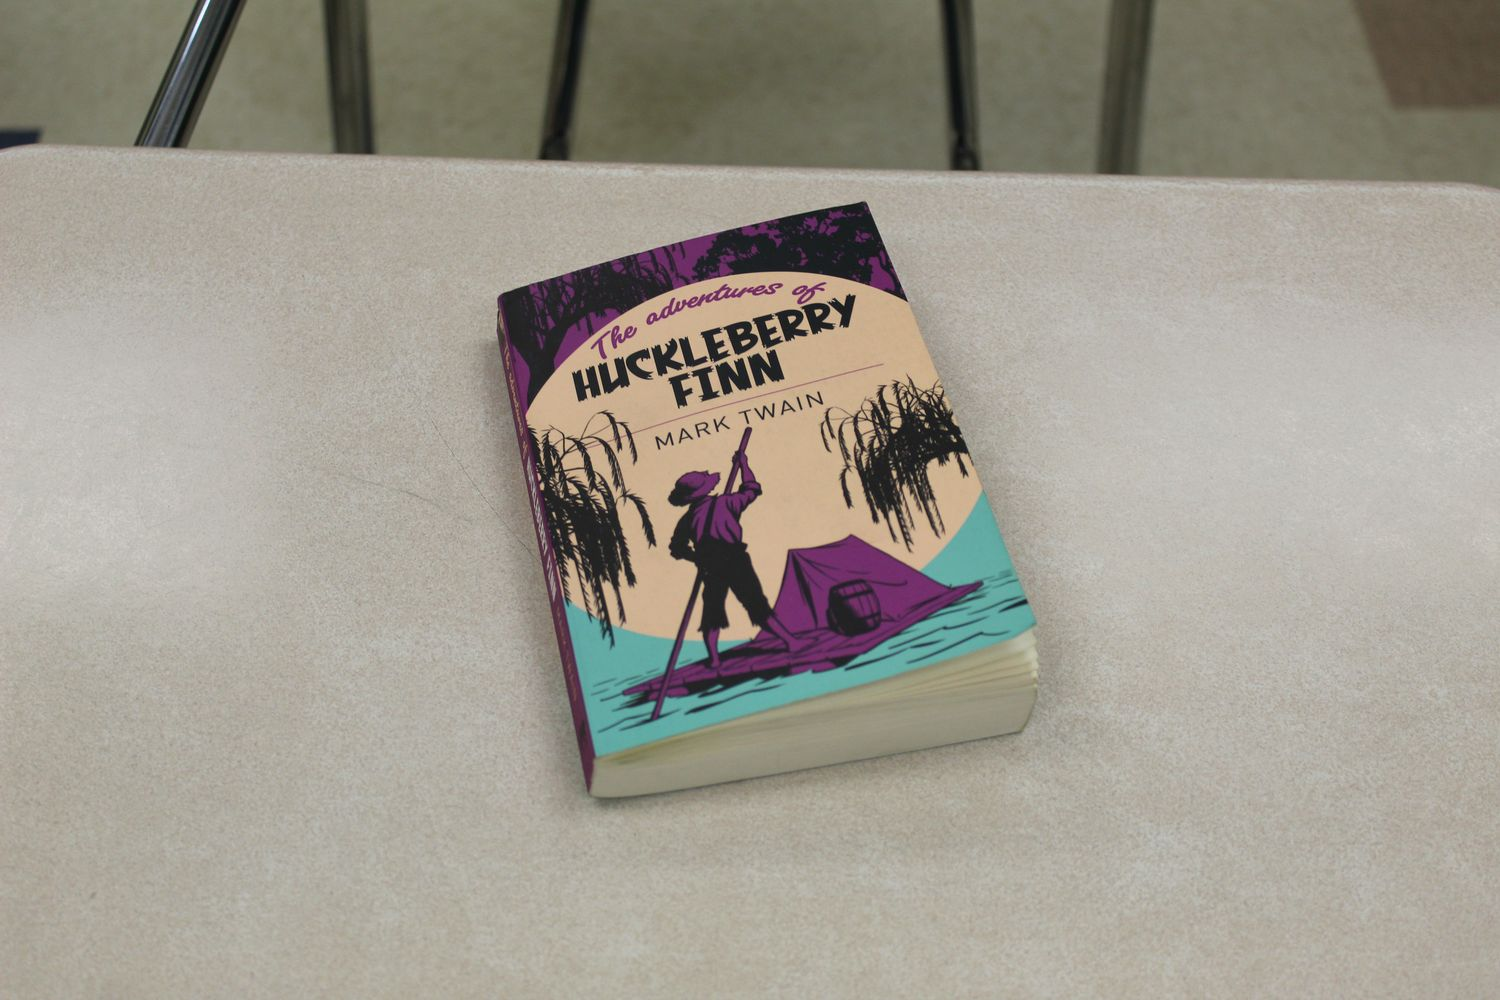 The novel Huckleberry Finn has been the subject of much controversy due to its legacy in schools and the use of the